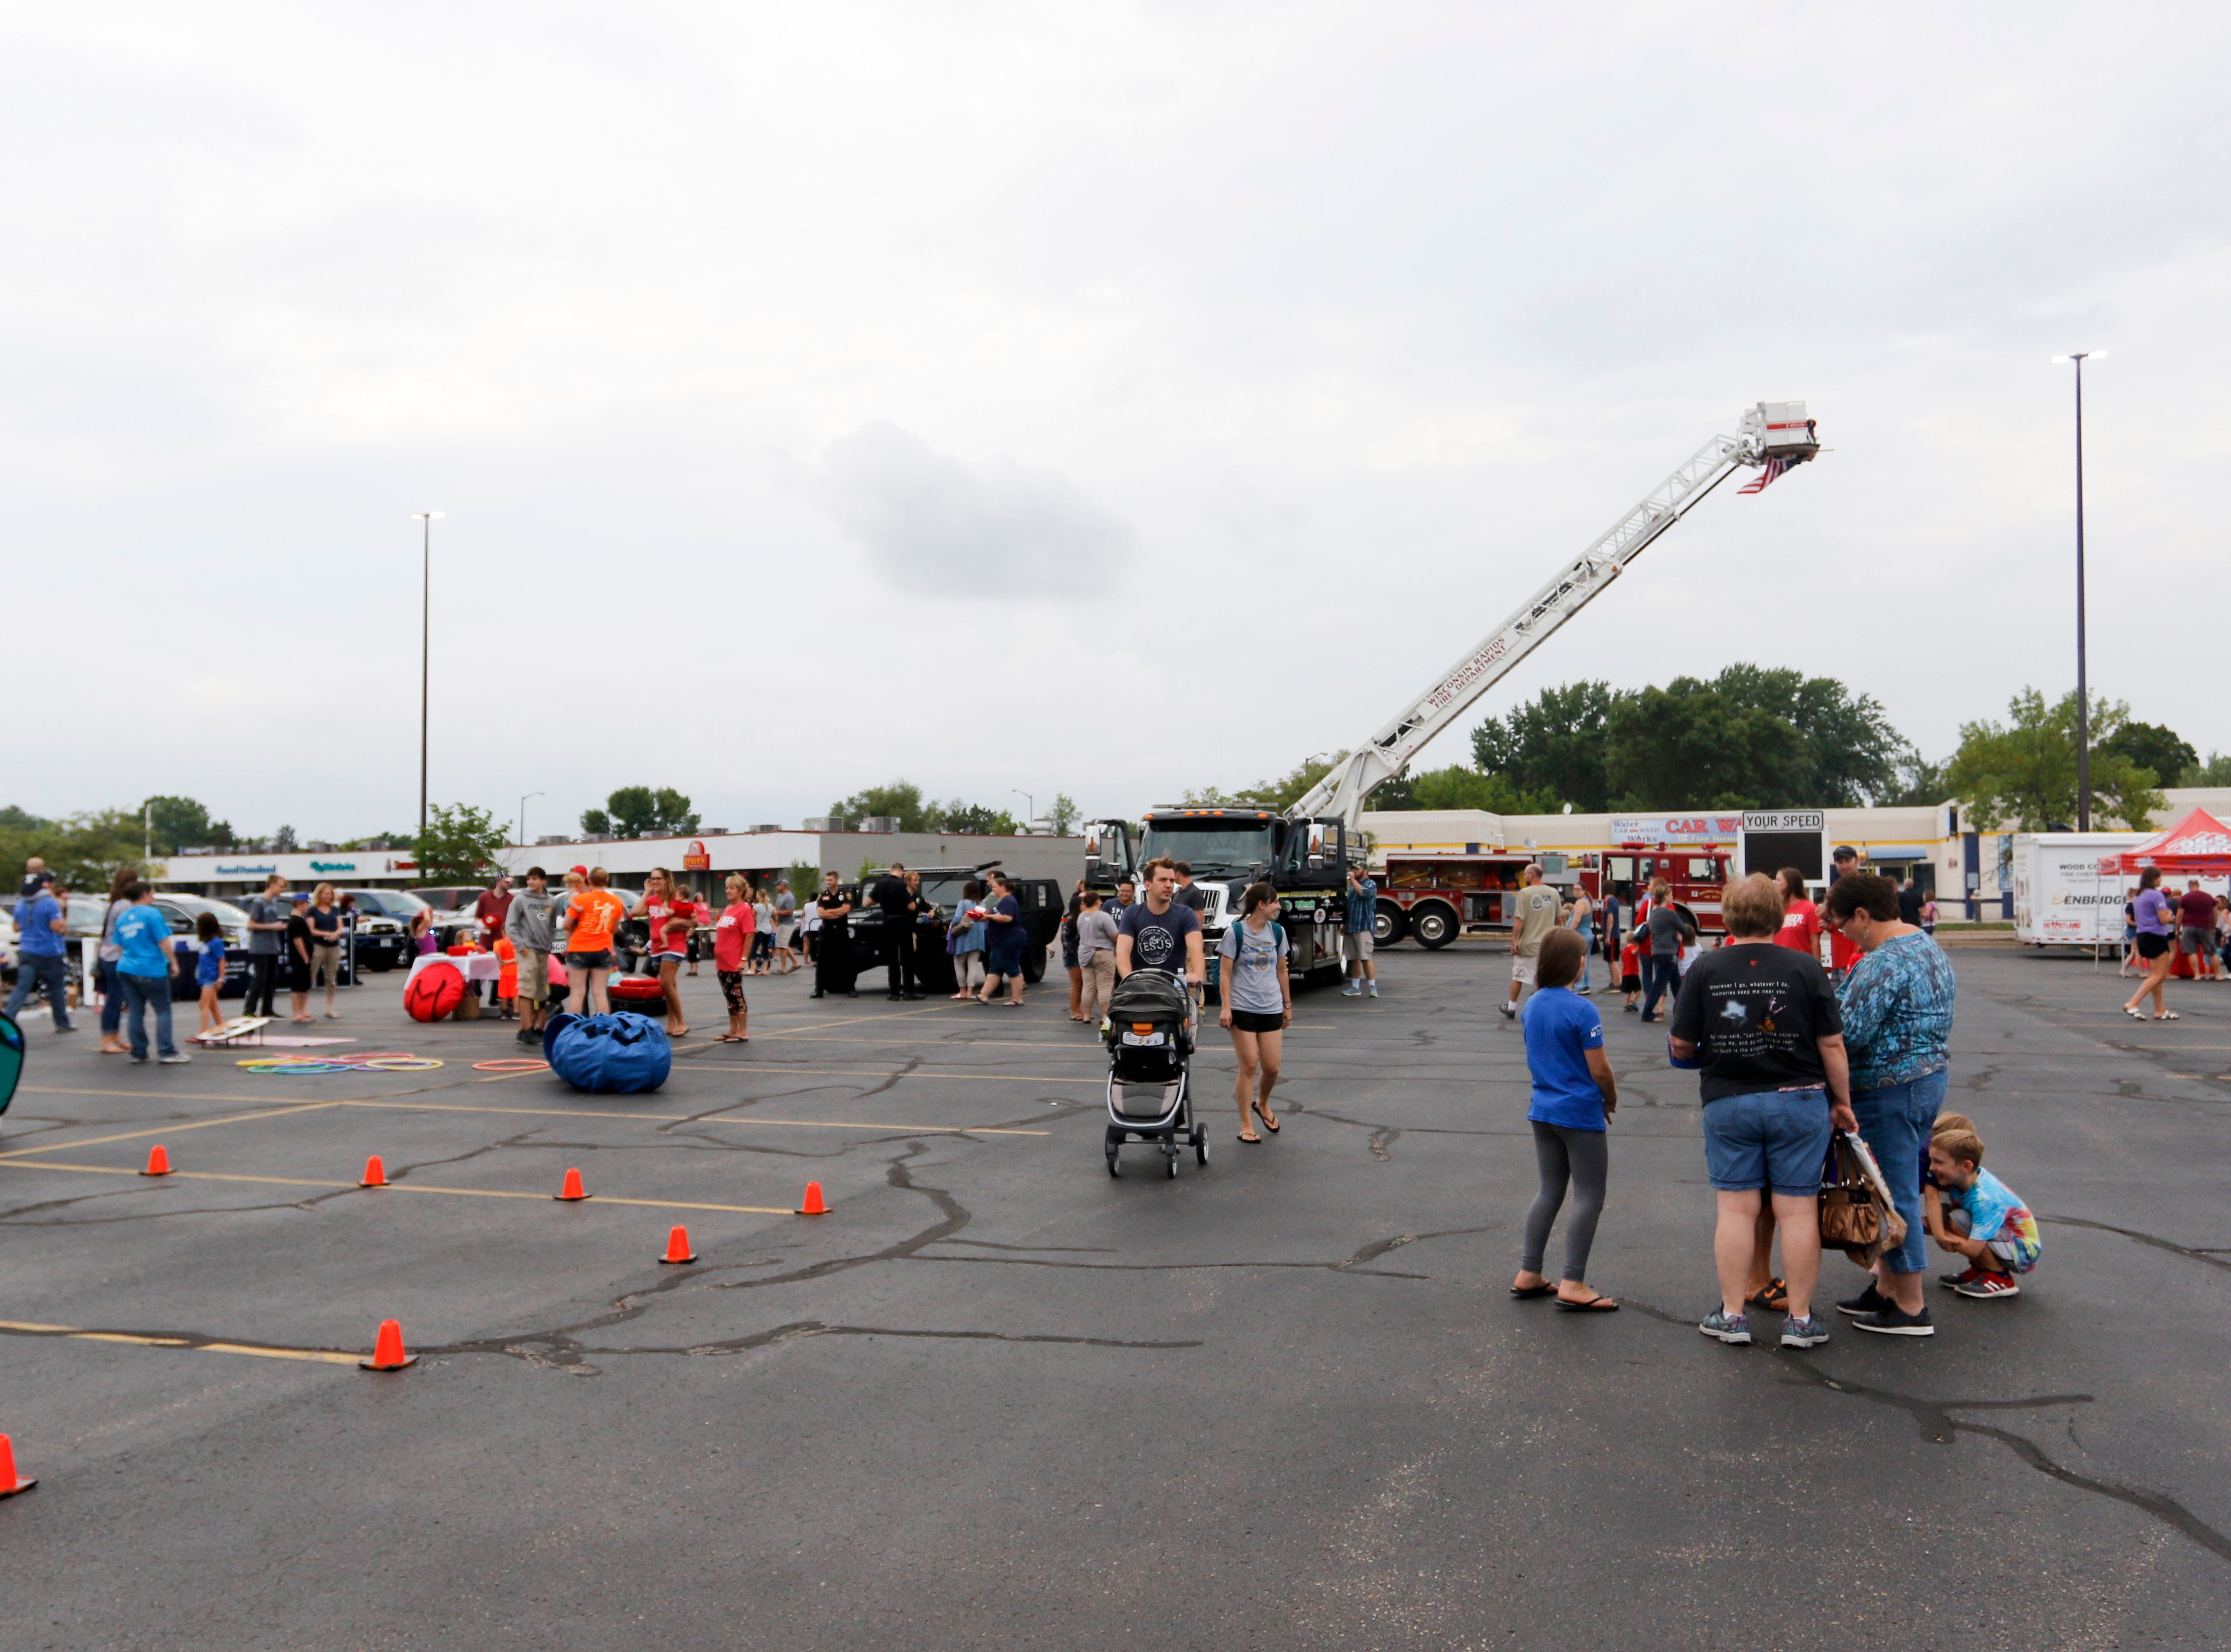 About 600 people attended the National Night Out event put on by the Wisconsin Rapids Police Department in the Crossview Church parking lot in Wisconsin Rapids Tuesday, August 7, 2018.